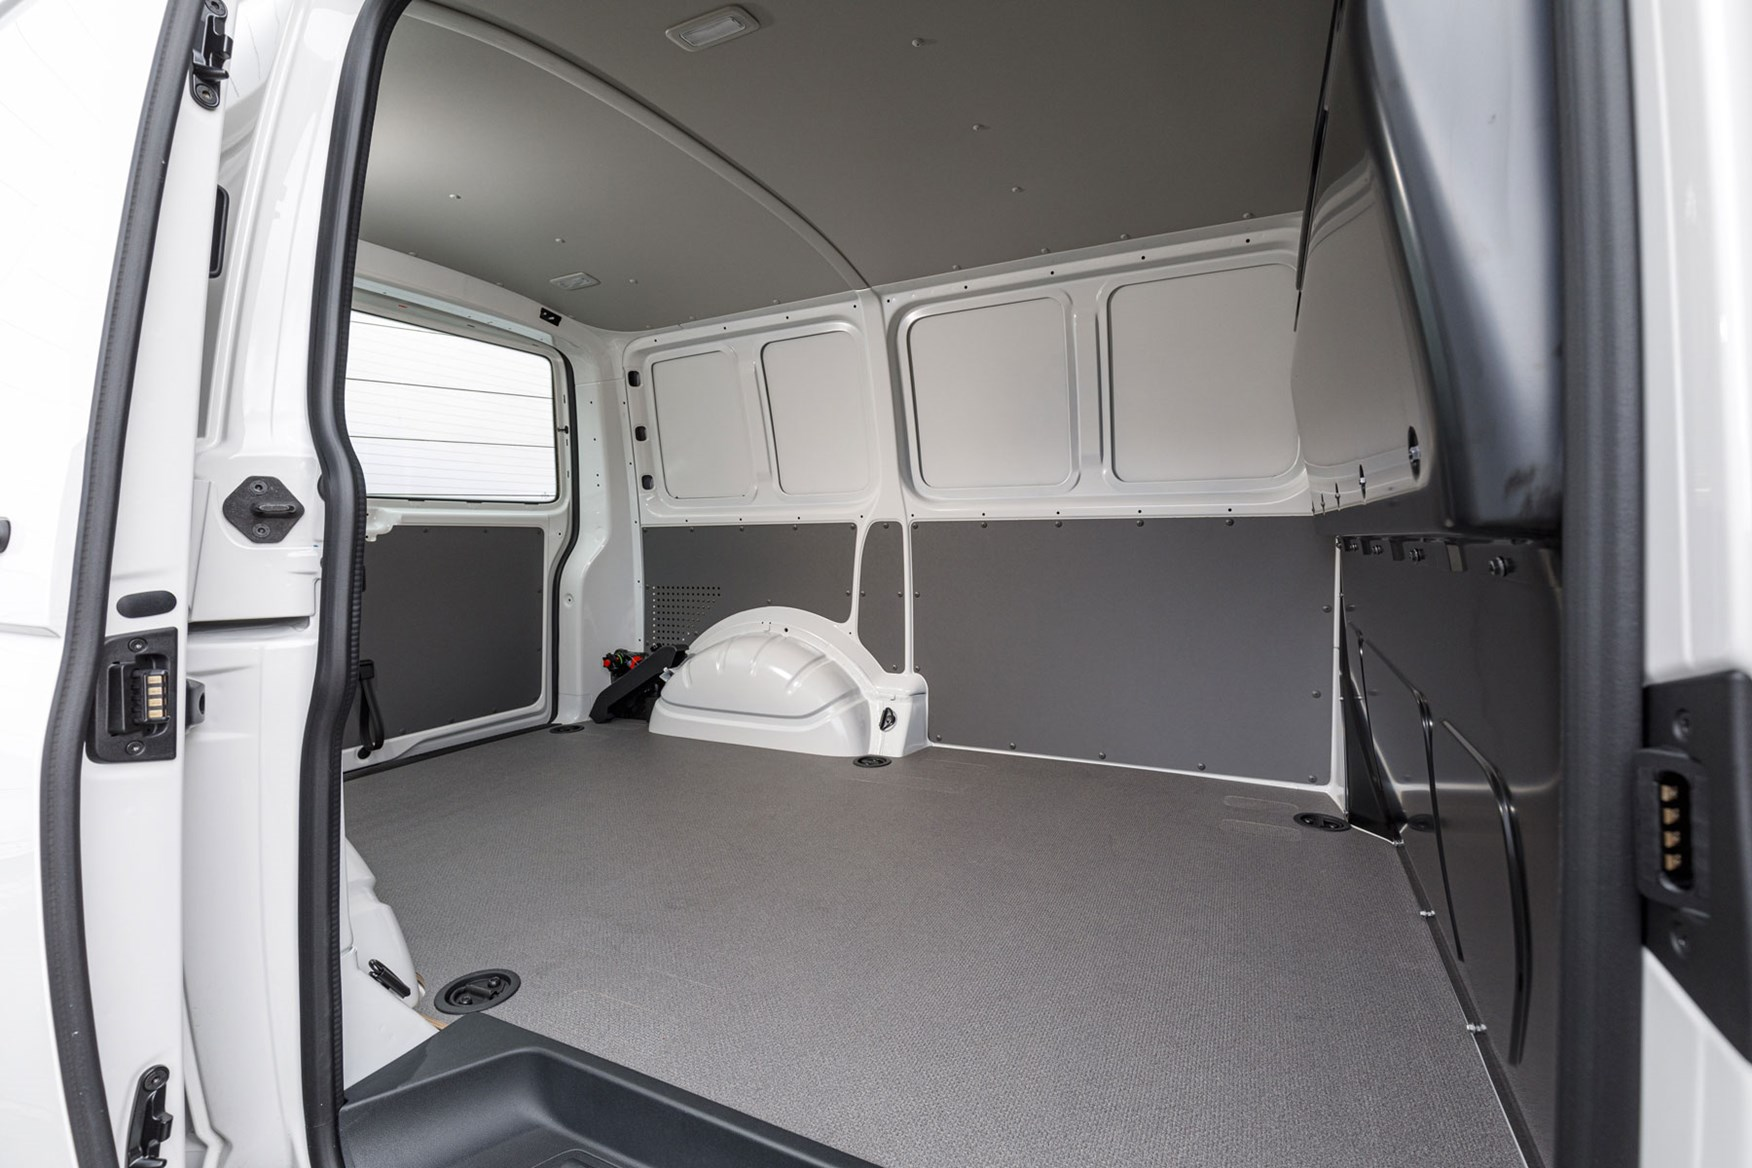 VW Transporter payload, dimensions and load area info - T6.1 facelift 2019, SWB load area viewed through side door